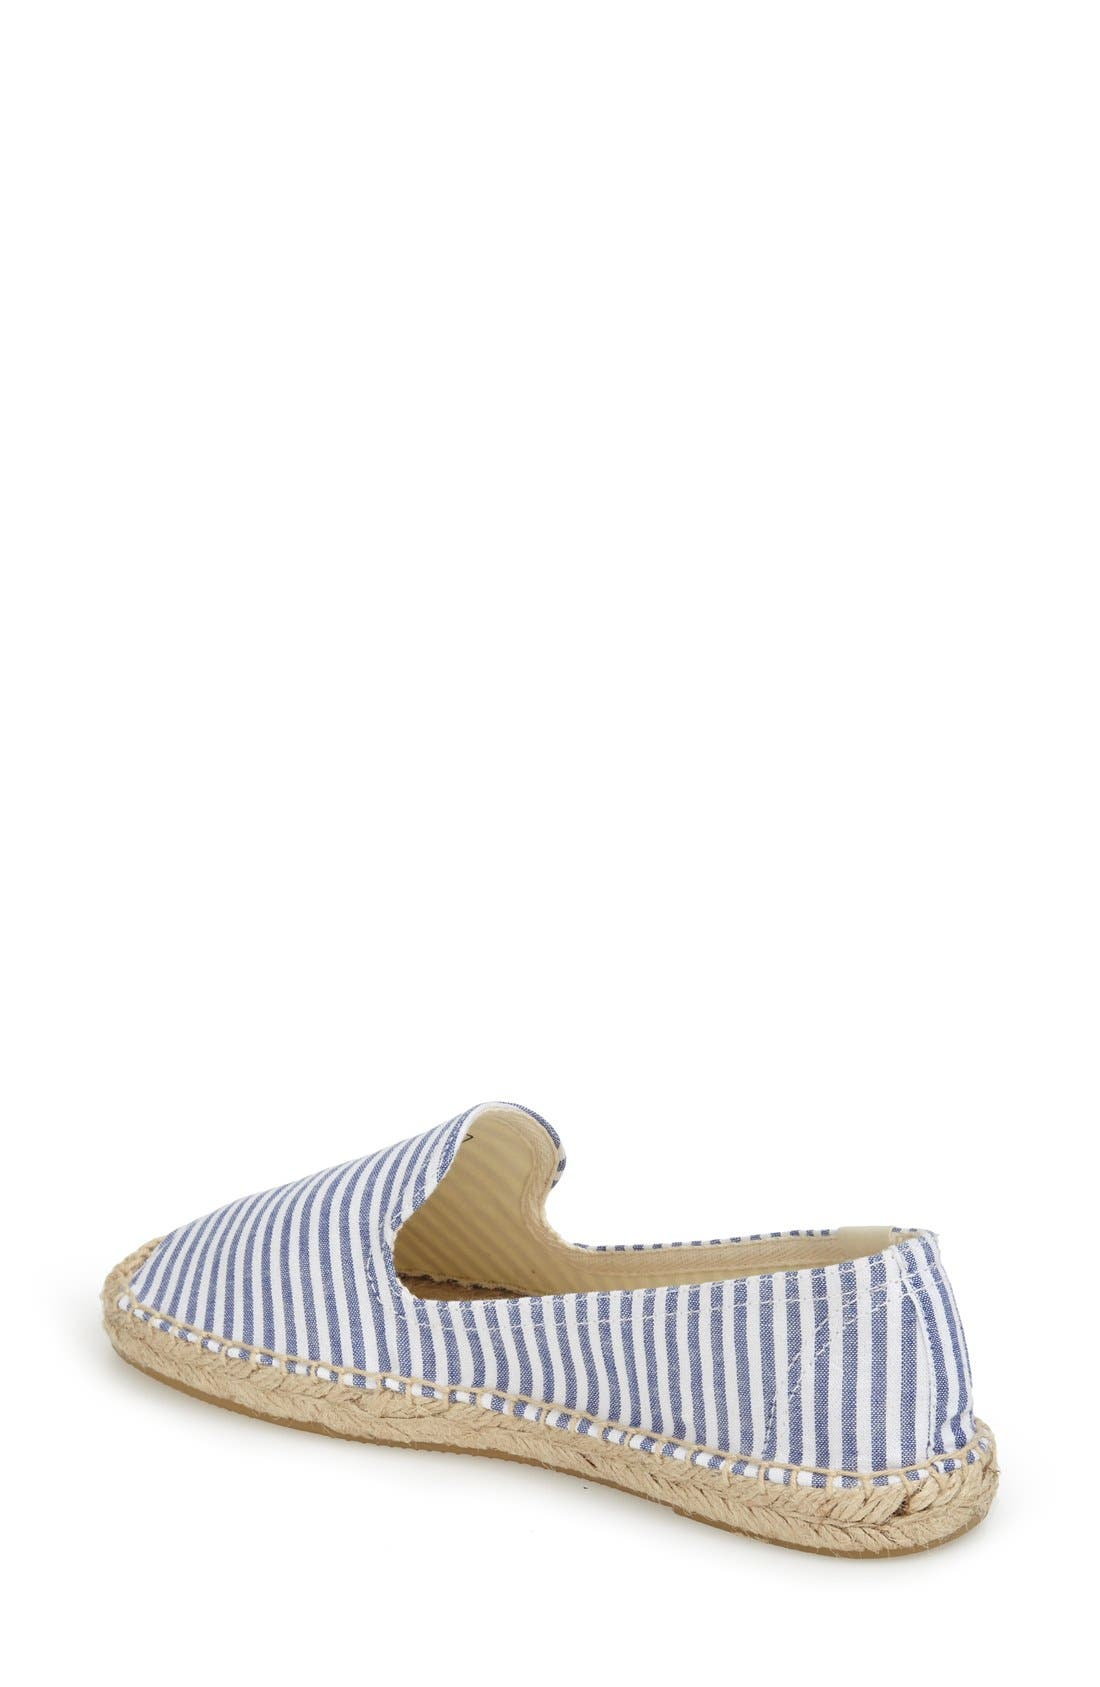 Alternate Image 2  - Soludos Smoking Slipper Espadrille (Women)